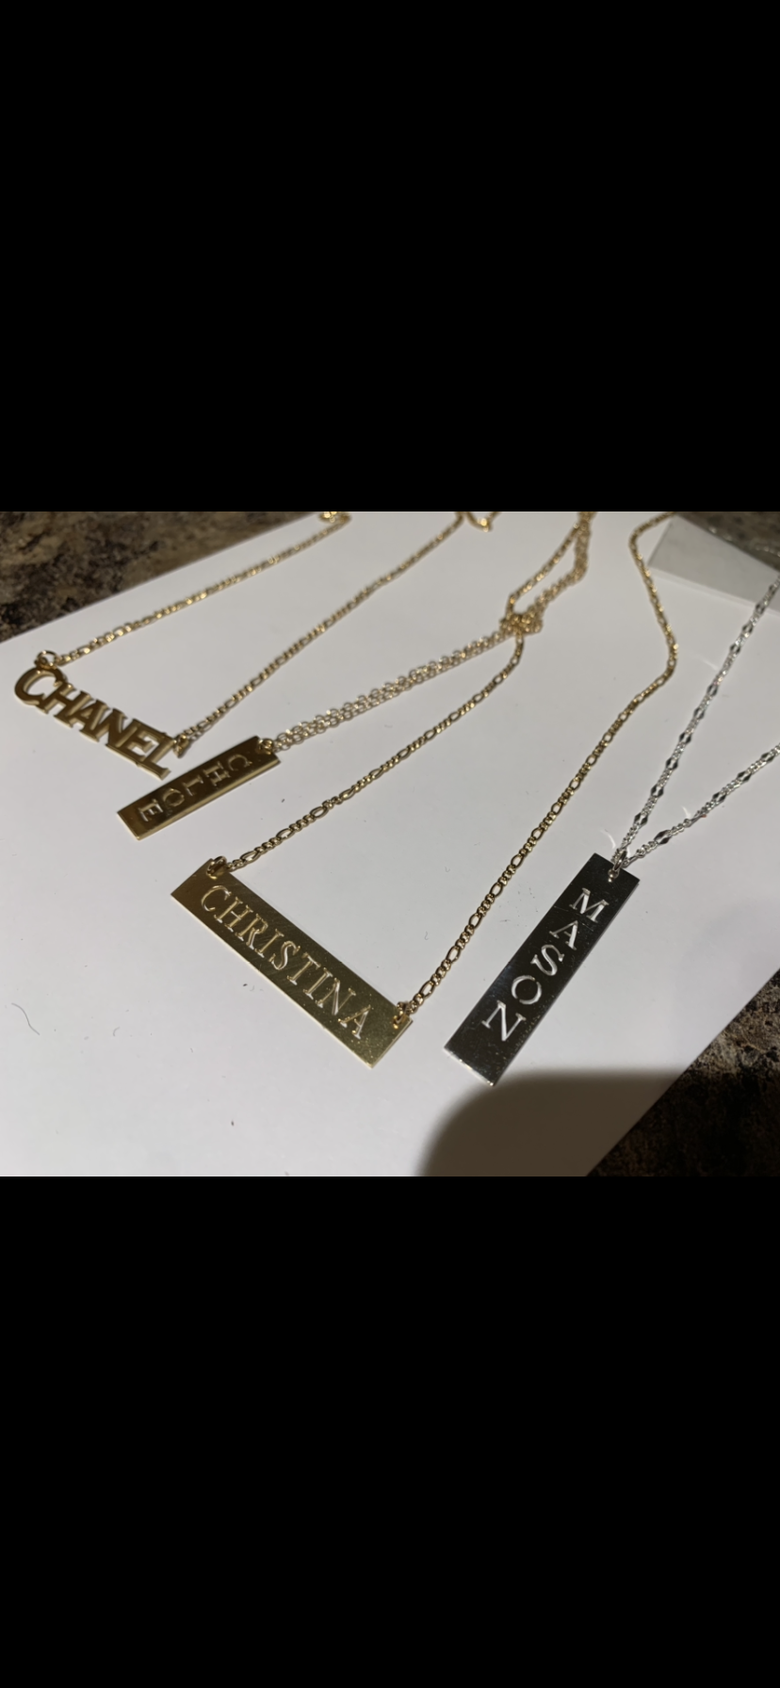 Image of Chanel, Mason, Chloe, Christina are available below! Lovemuseplaques.com if u want ur name!